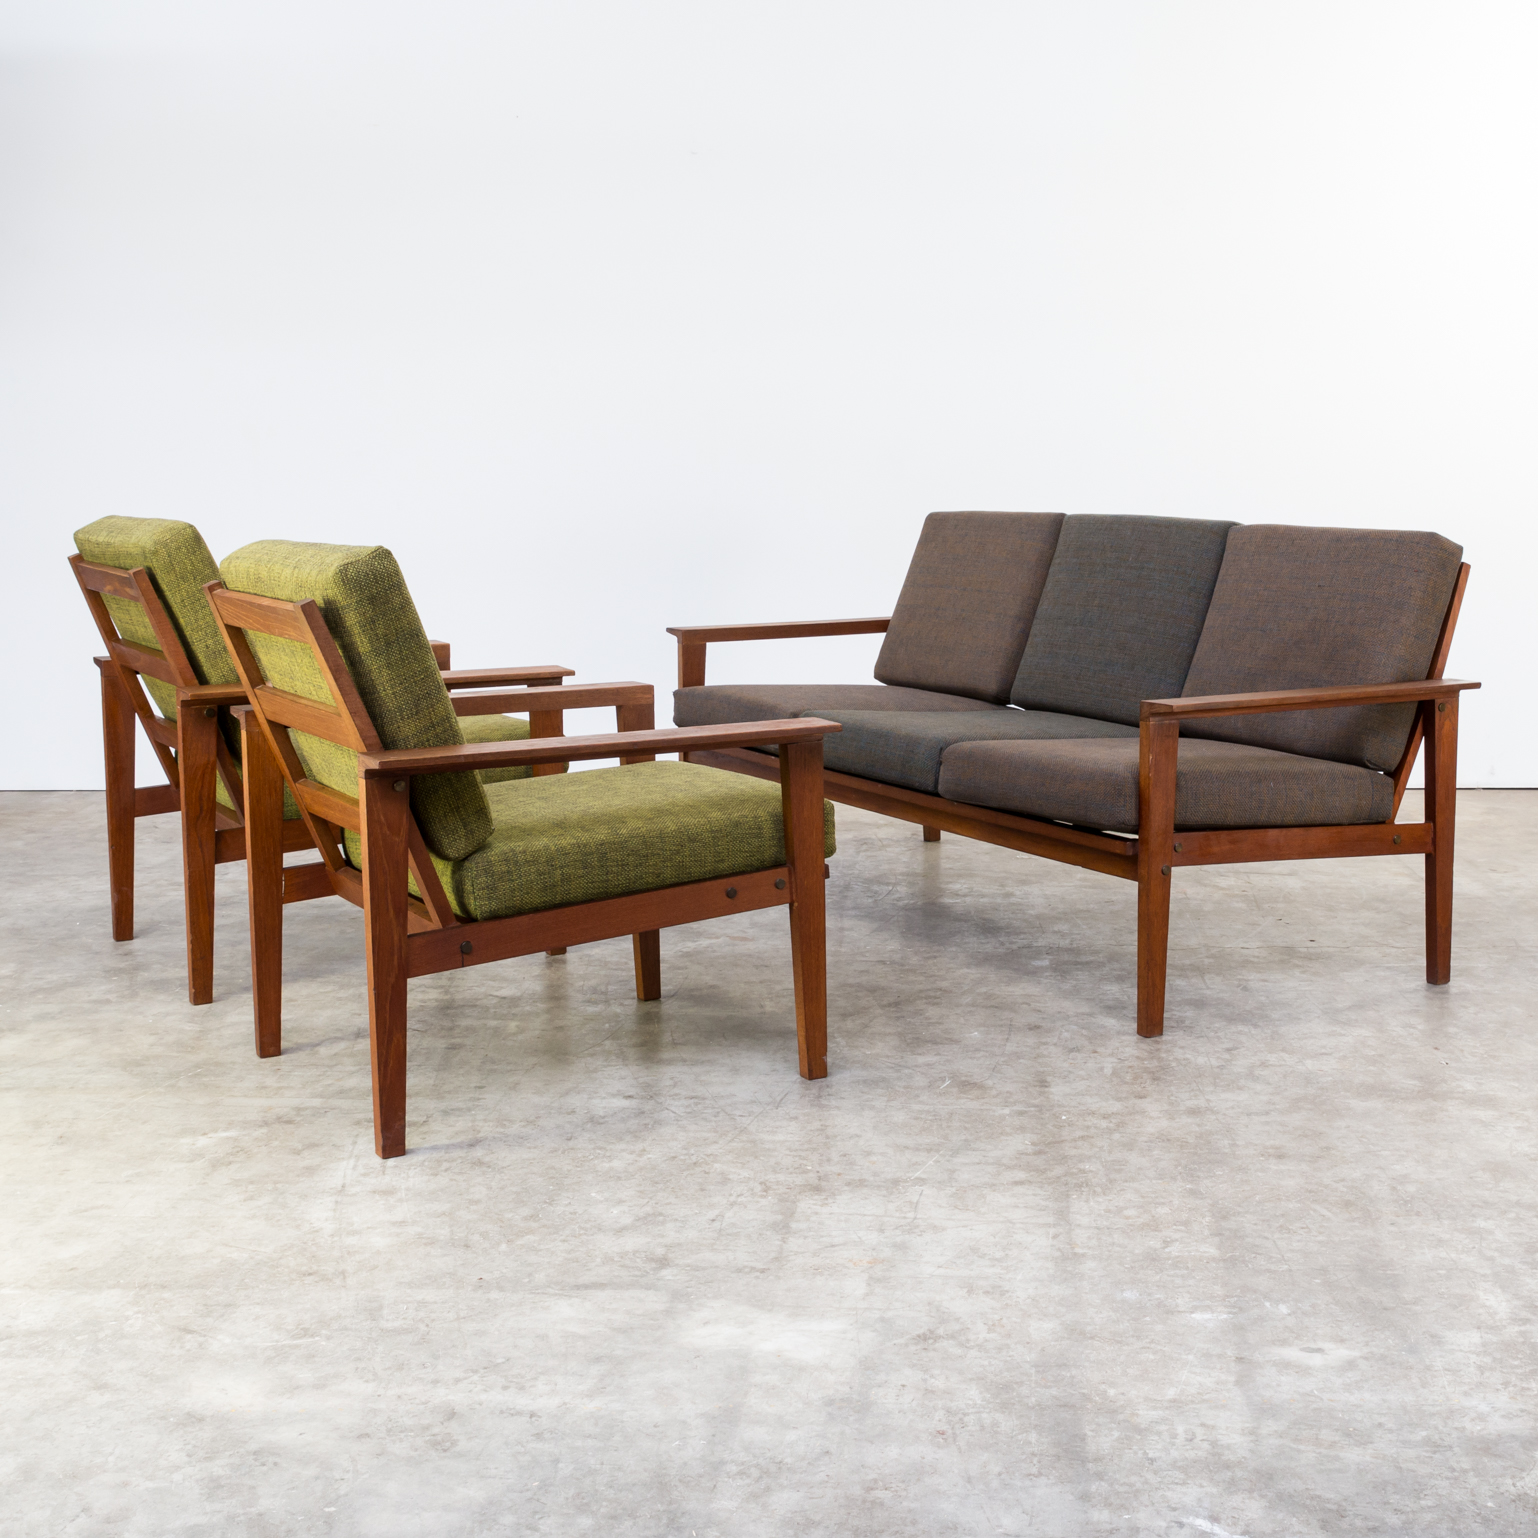 60s teak seating group 1 three seat sofa 2 fauteuils. Black Bedroom Furniture Sets. Home Design Ideas